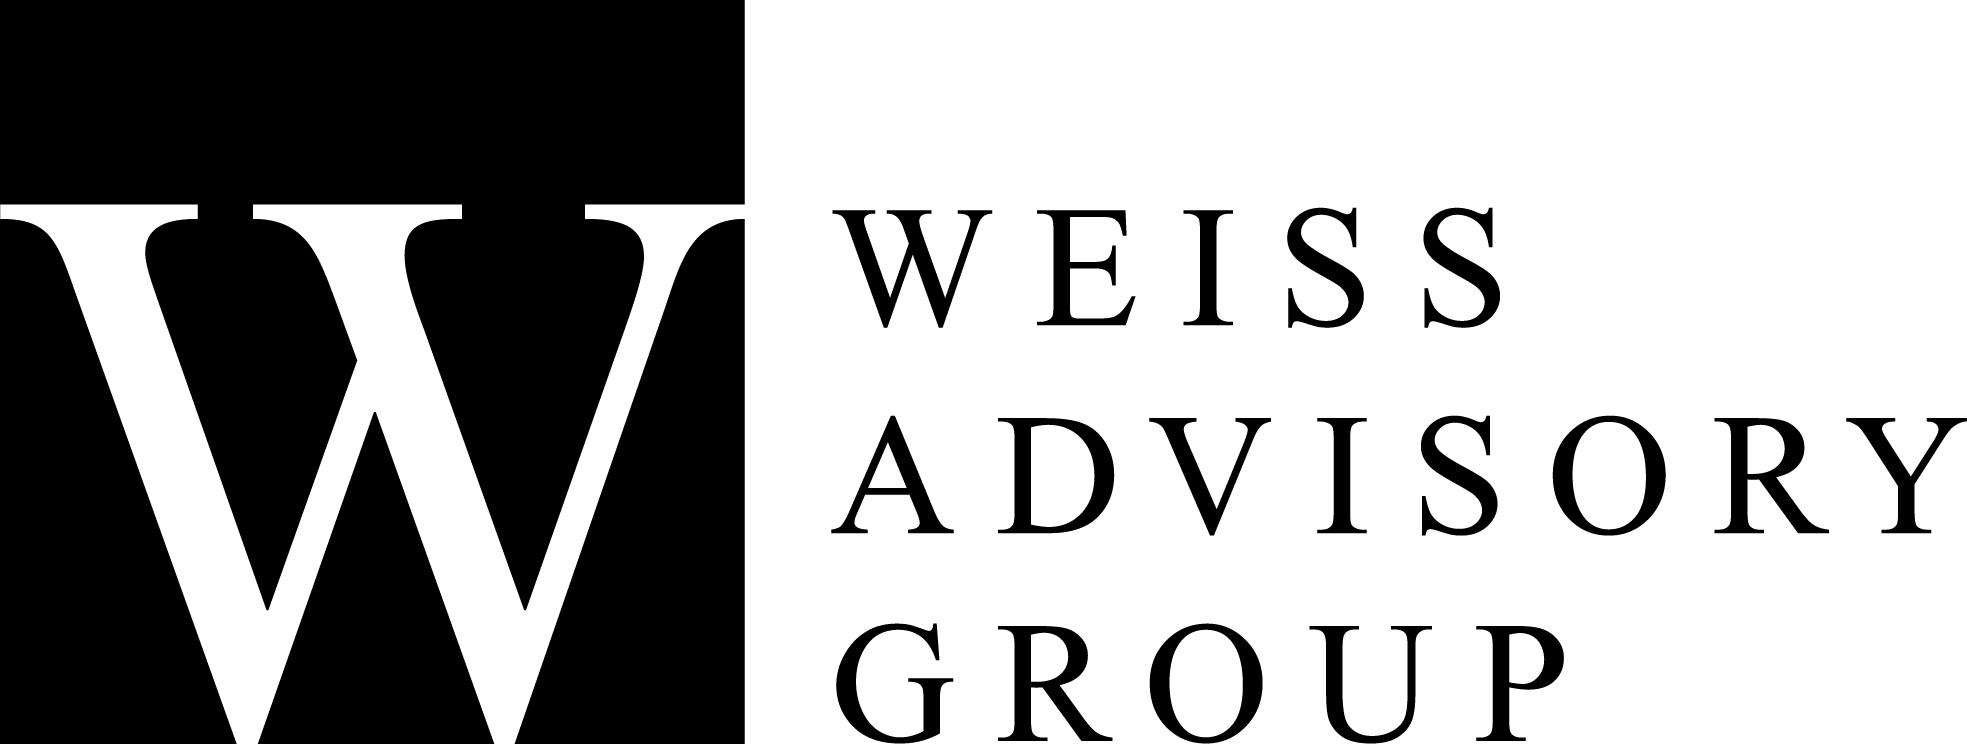 Weiss Advisory Group